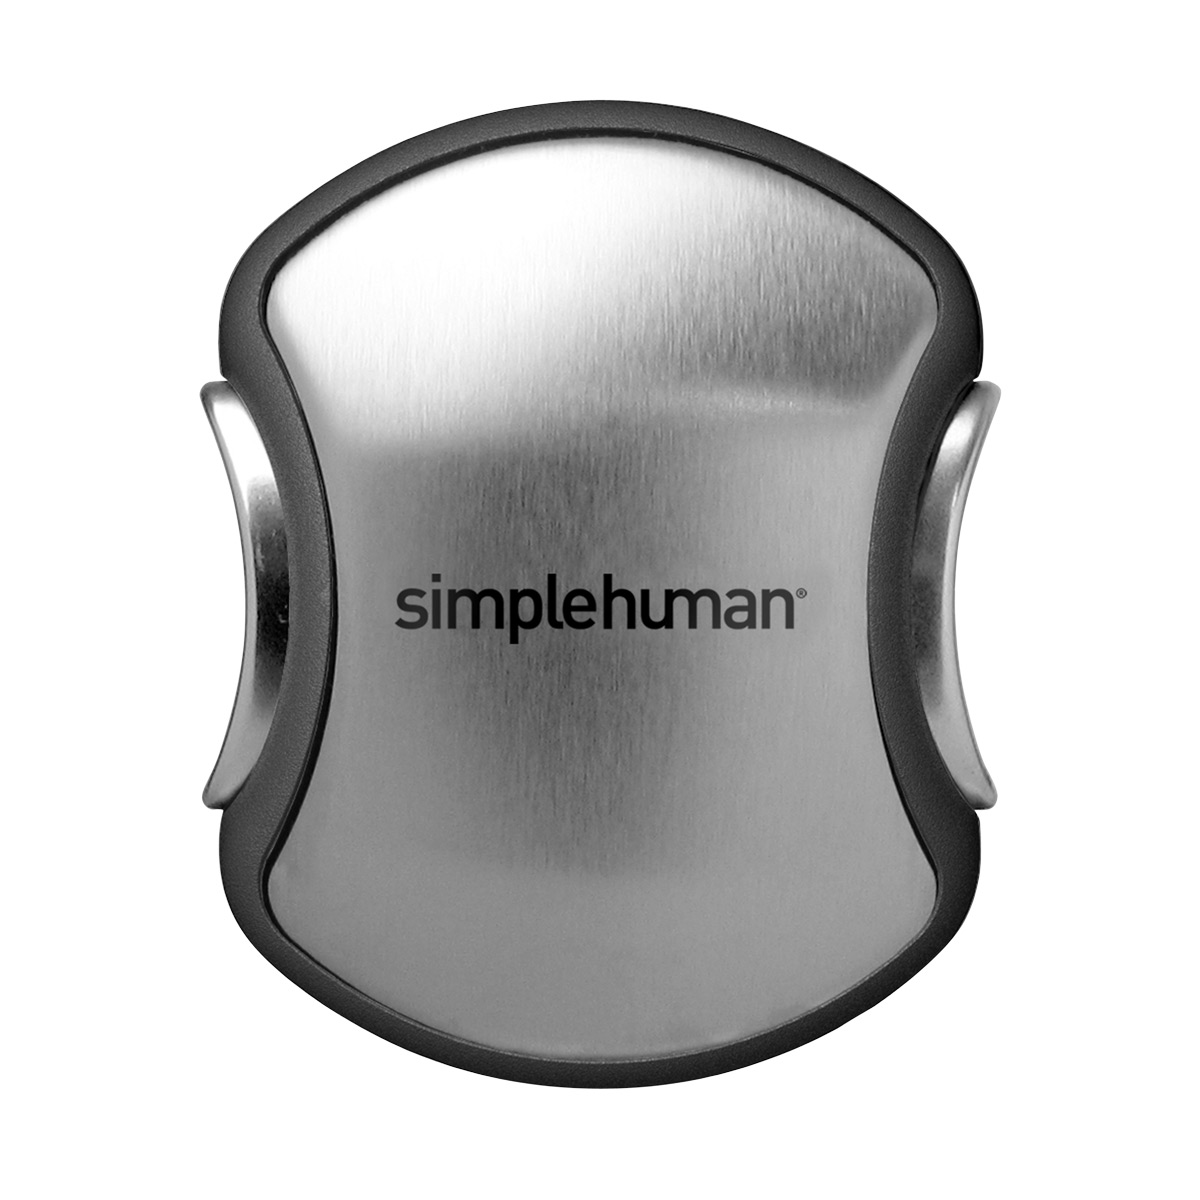 simplehuman Quick Load Paper Towel Holder Black Stainless Steel